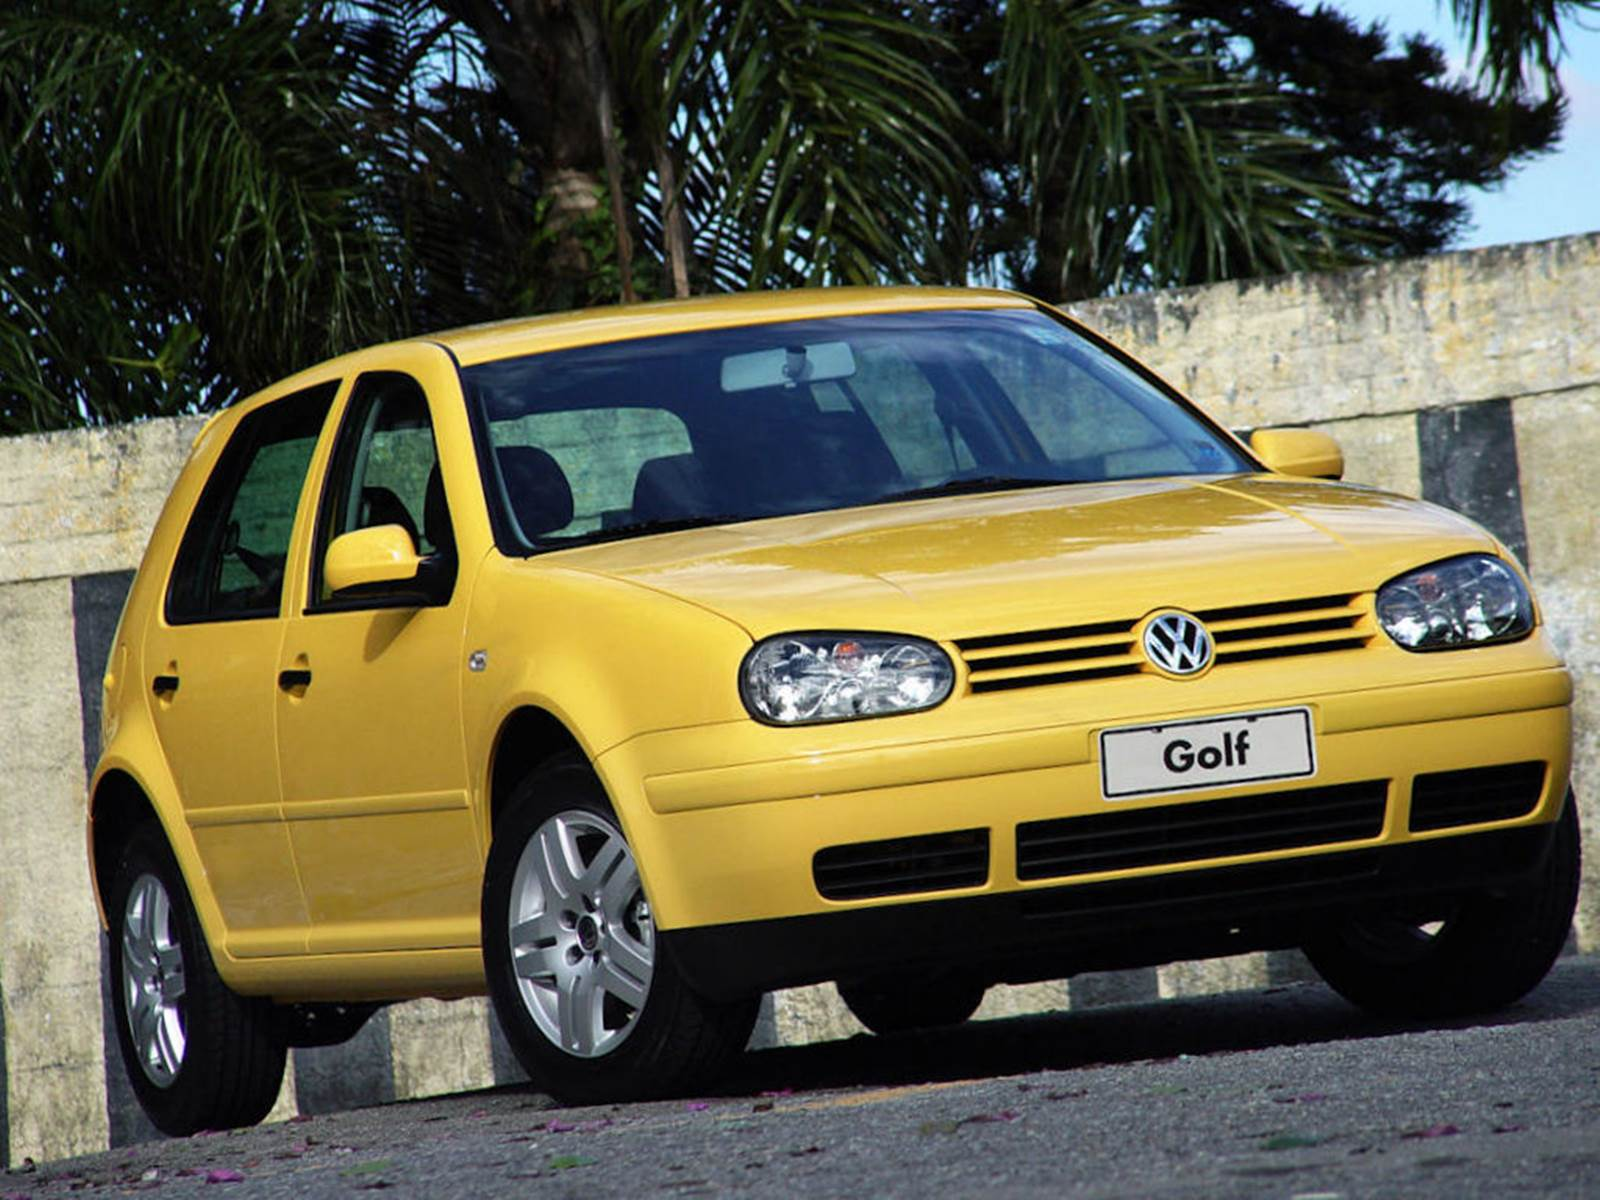 vw golf sport 2003 fotos consumo e desempenho car blog br. Black Bedroom Furniture Sets. Home Design Ideas